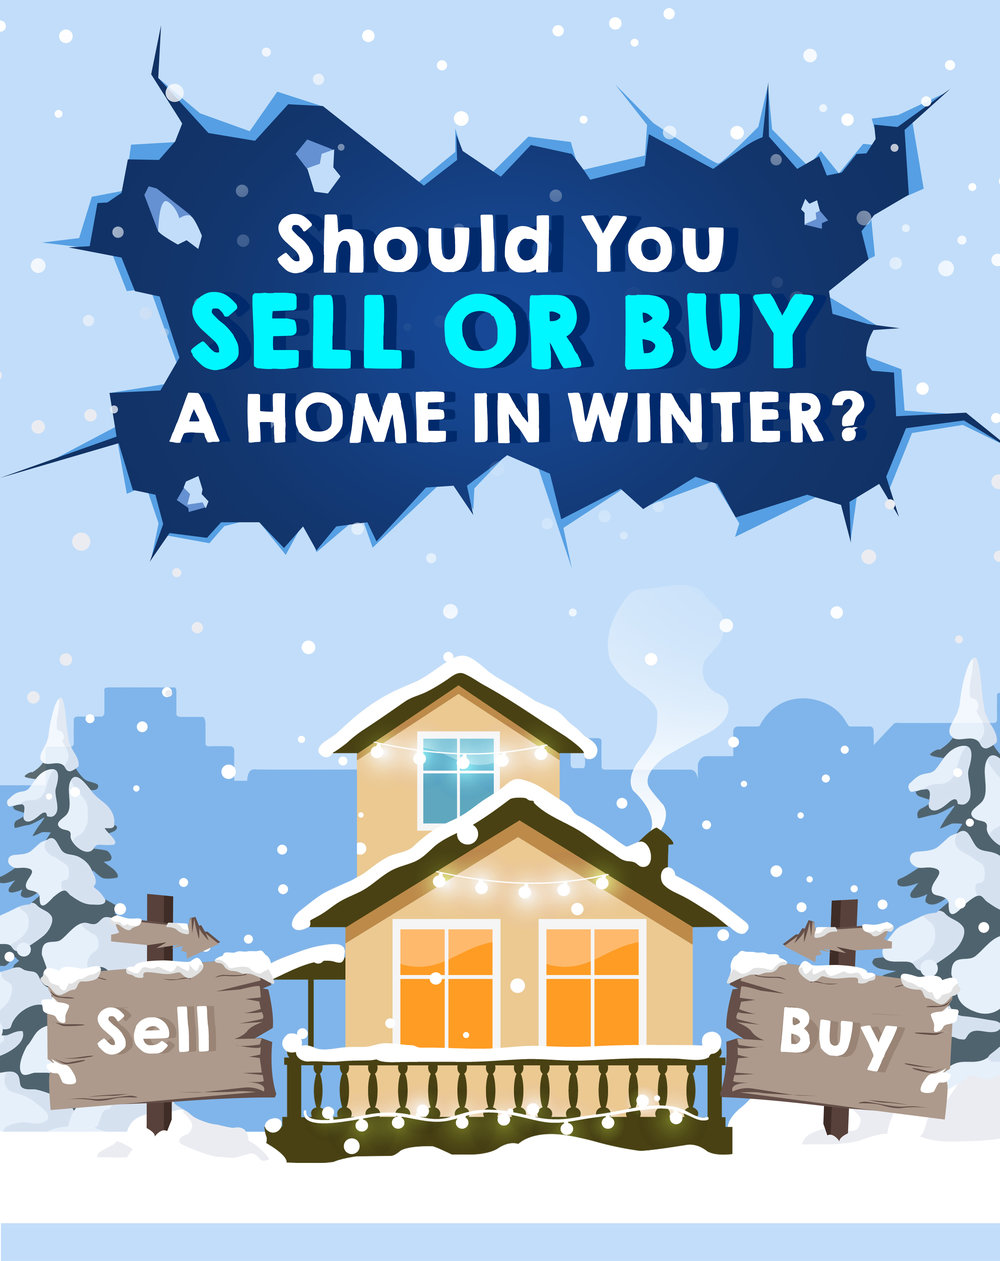 Should You Sell or Buy A Home in Winter-title.jpg